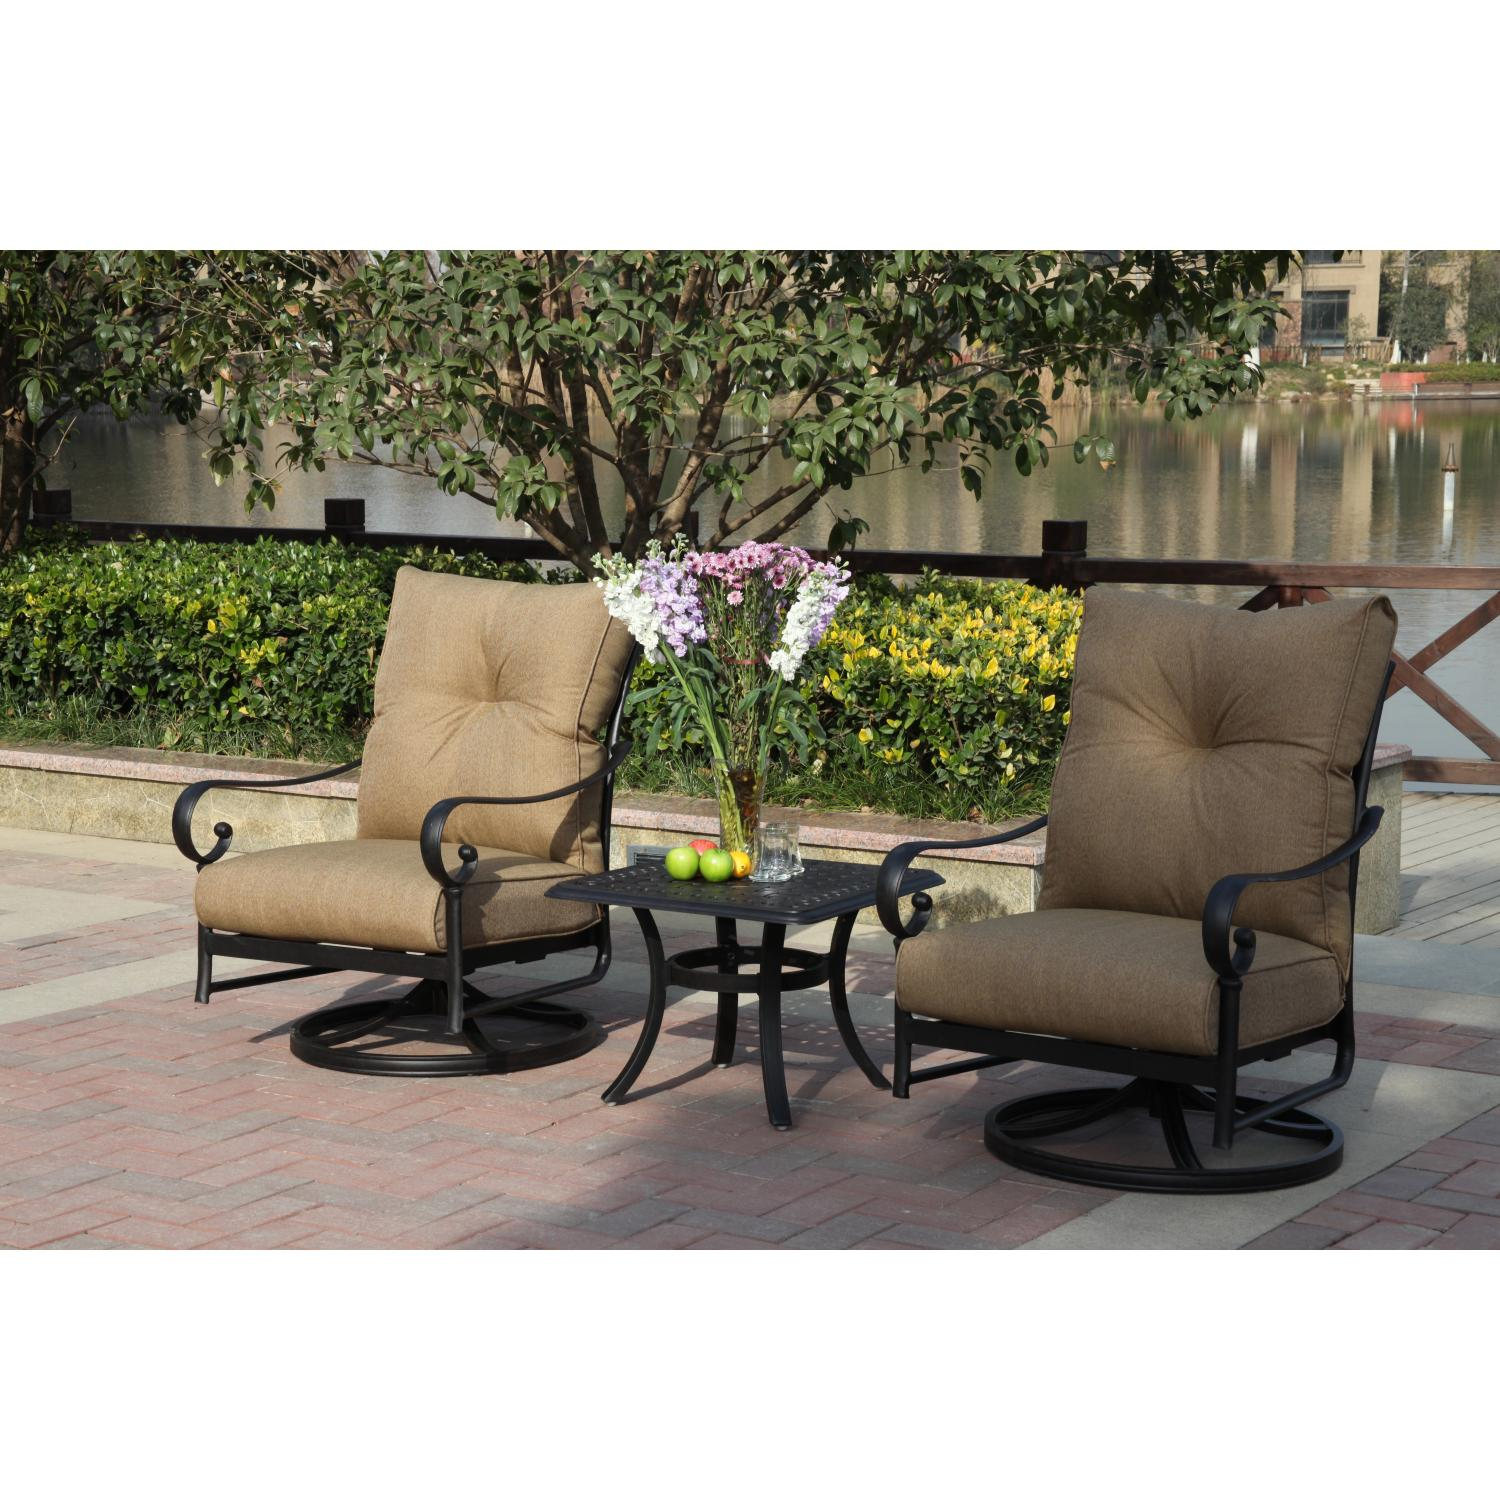 Darlee Santa Anita 3 Piece Cast Aluminum Patio Conversation Seating Set ...